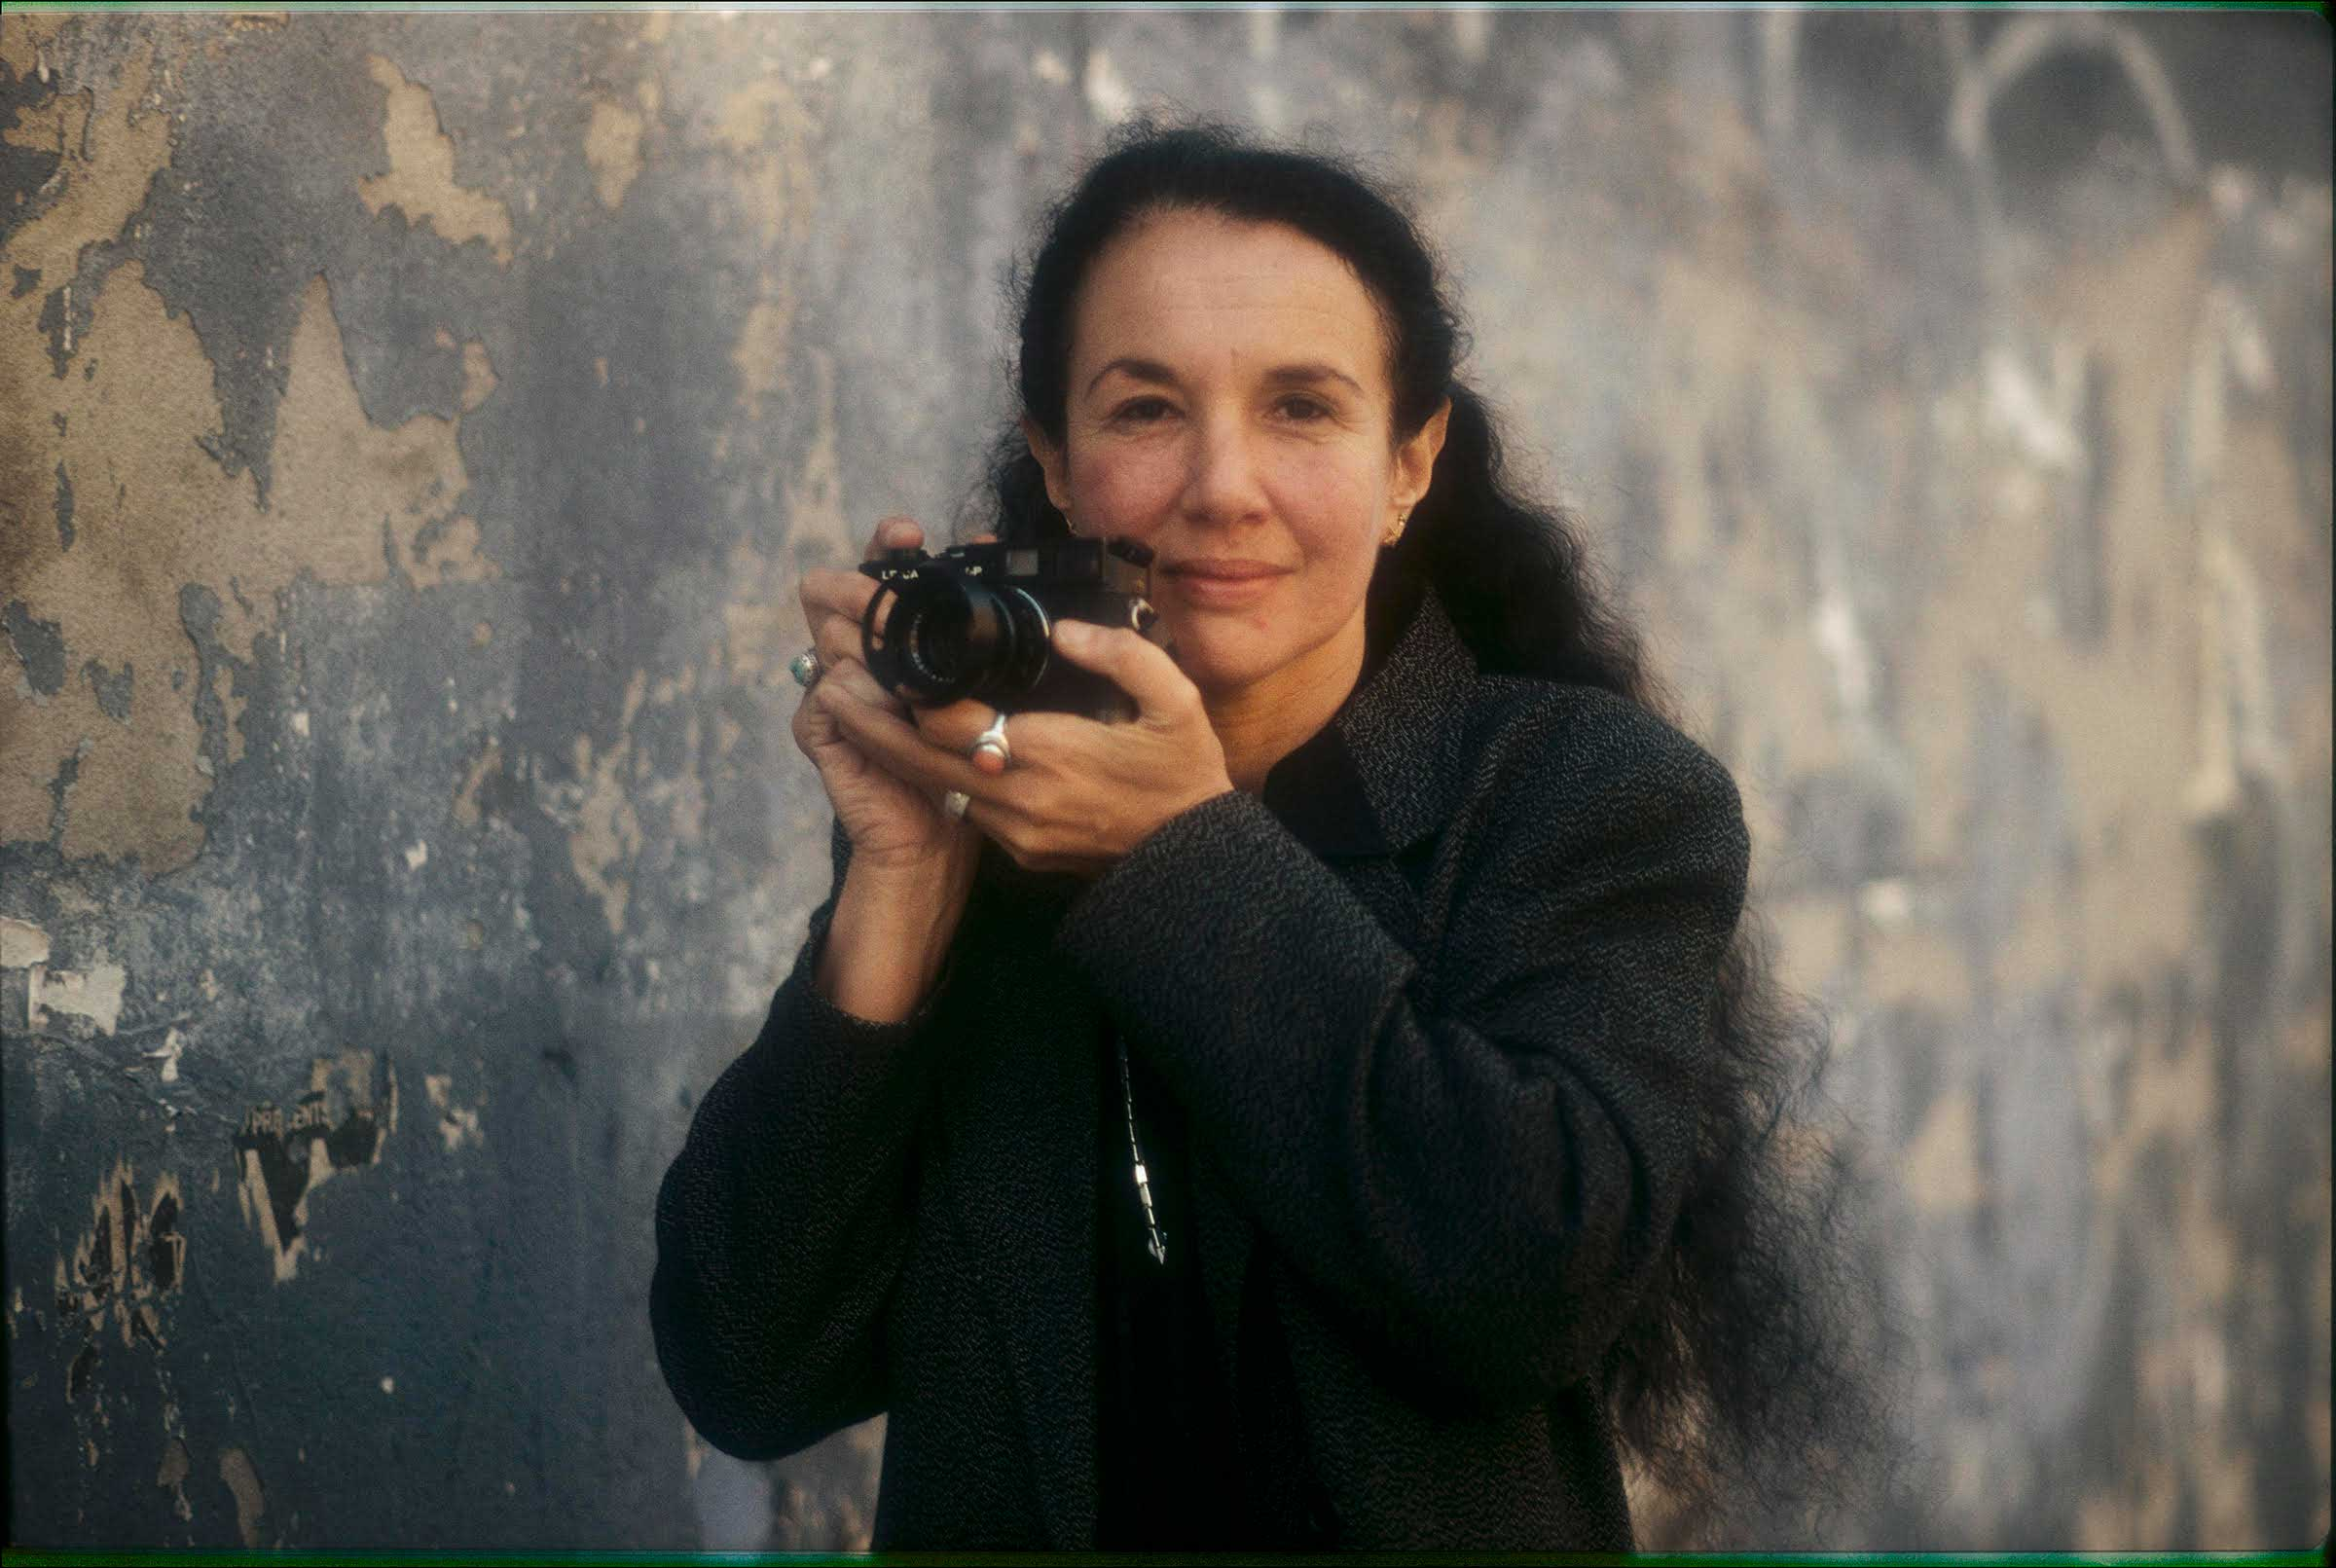 Mary Ellen Mark, NYC, 1987 photograph by Martin Bell